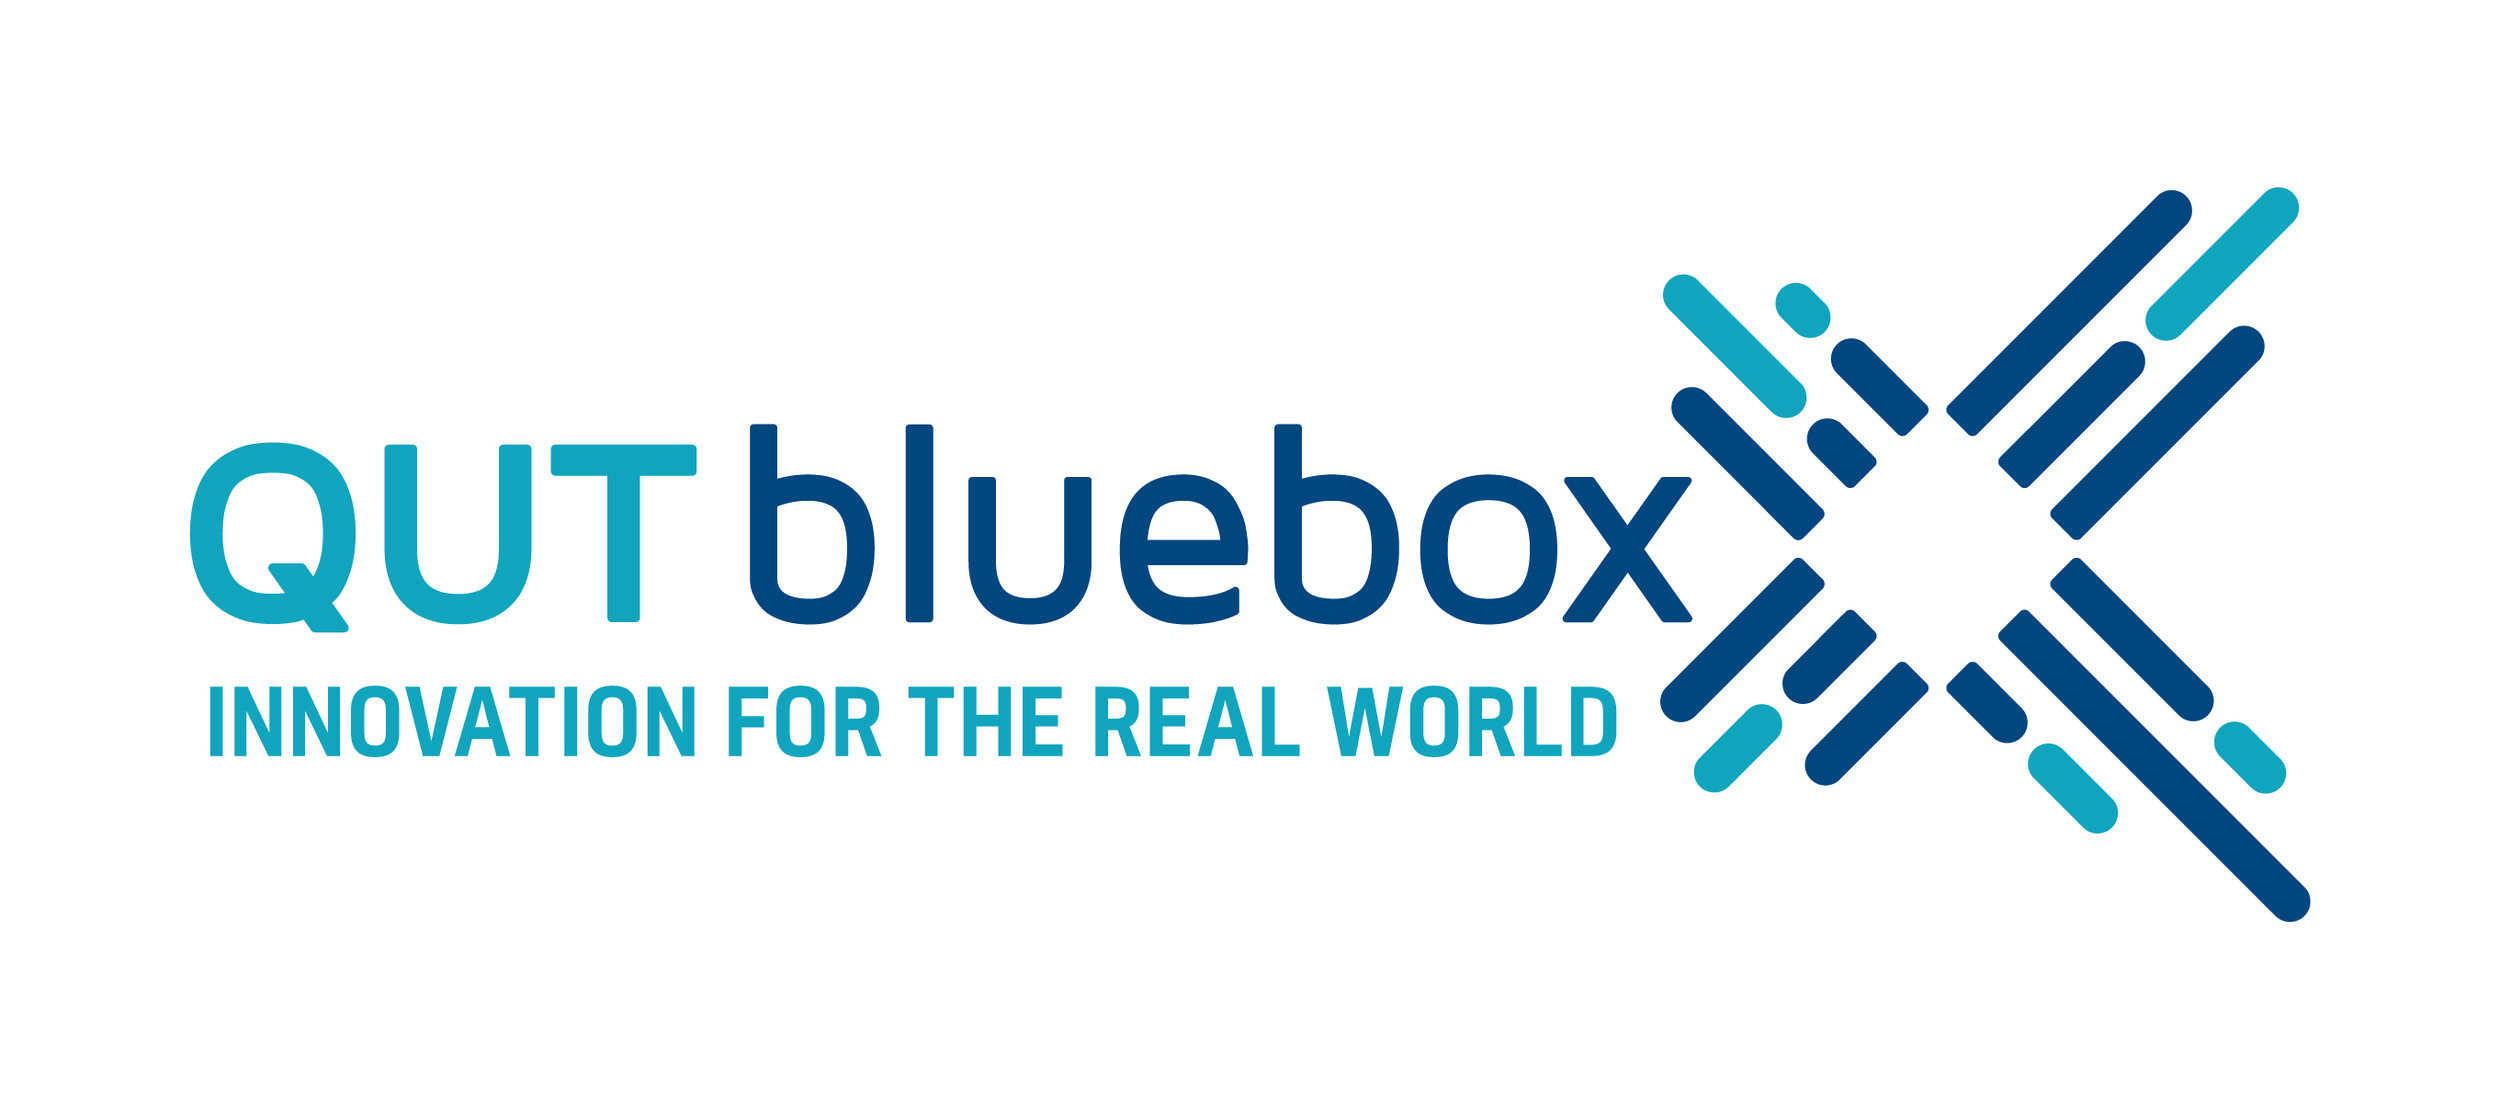 Gardens Point, Brisbane, The QUT bluebox have awarded NewVote a position at their accelerator lab and given us a grant of $15,000.